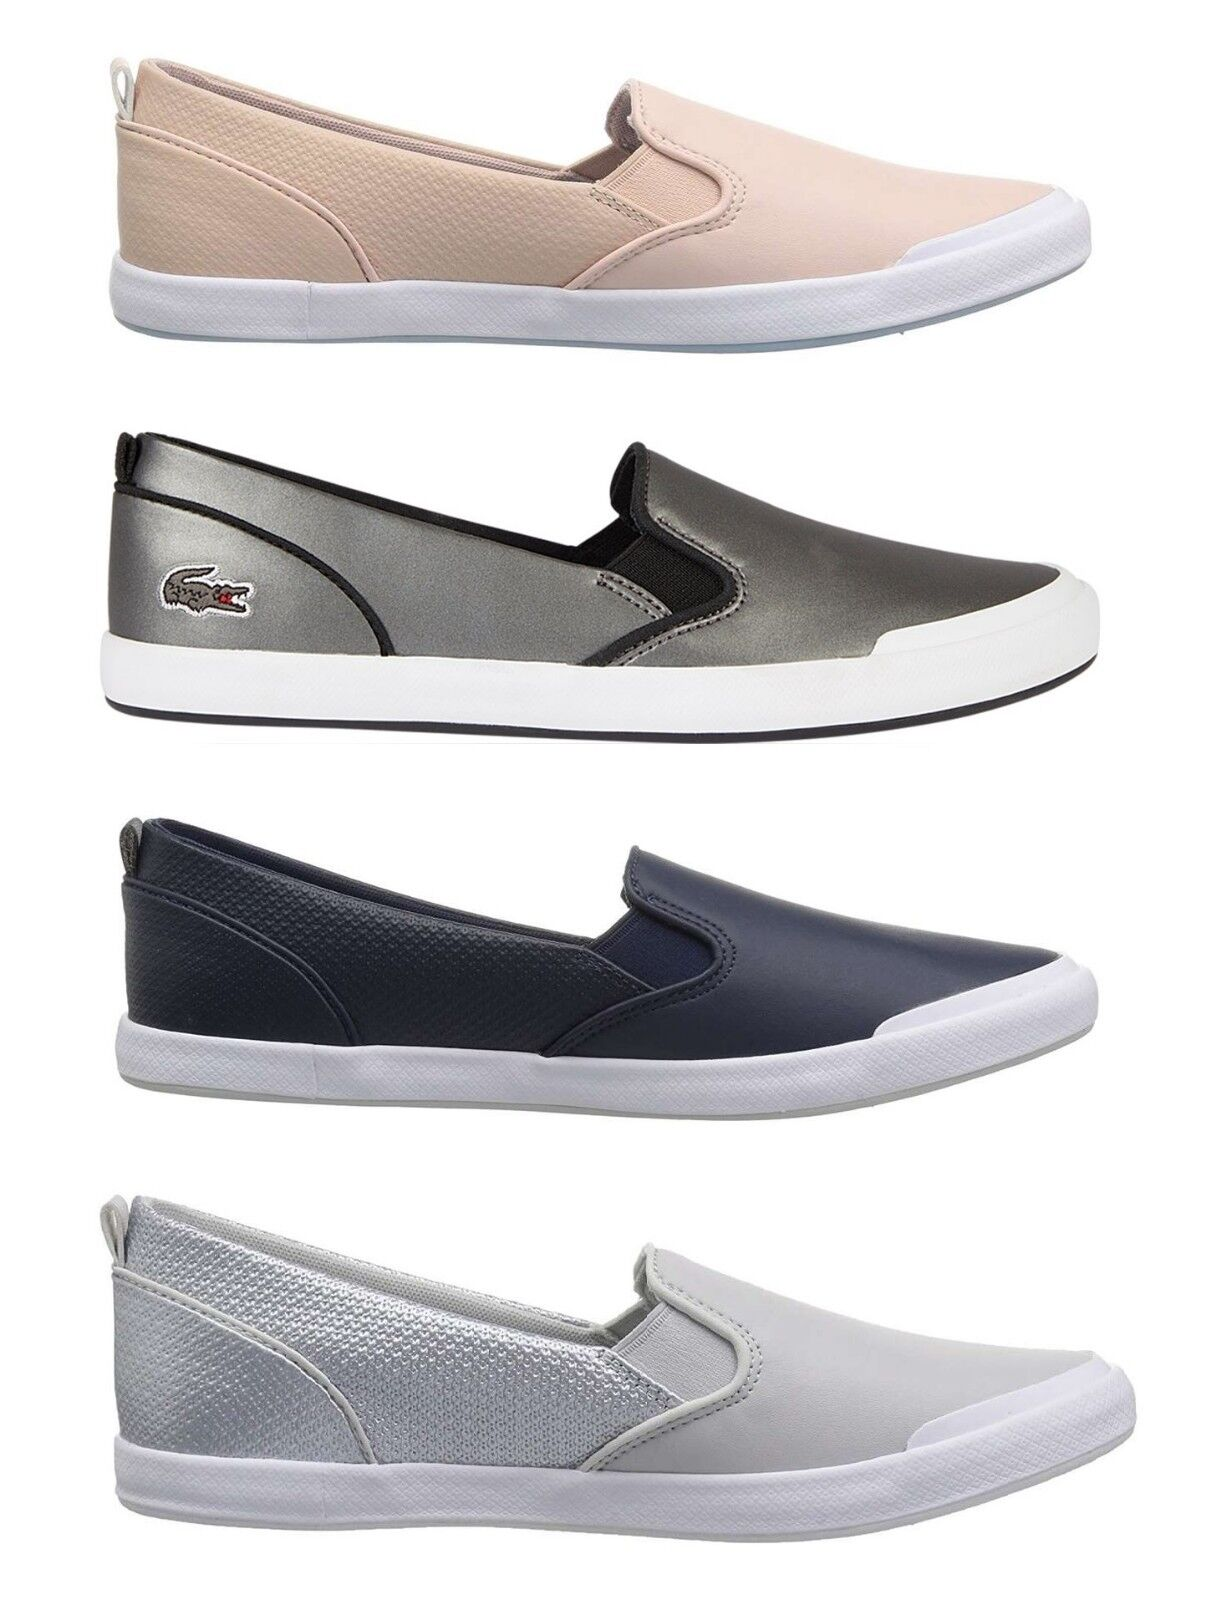 Lacoste Women NEW Lancelle Series Slip On Flats Casual Shoes